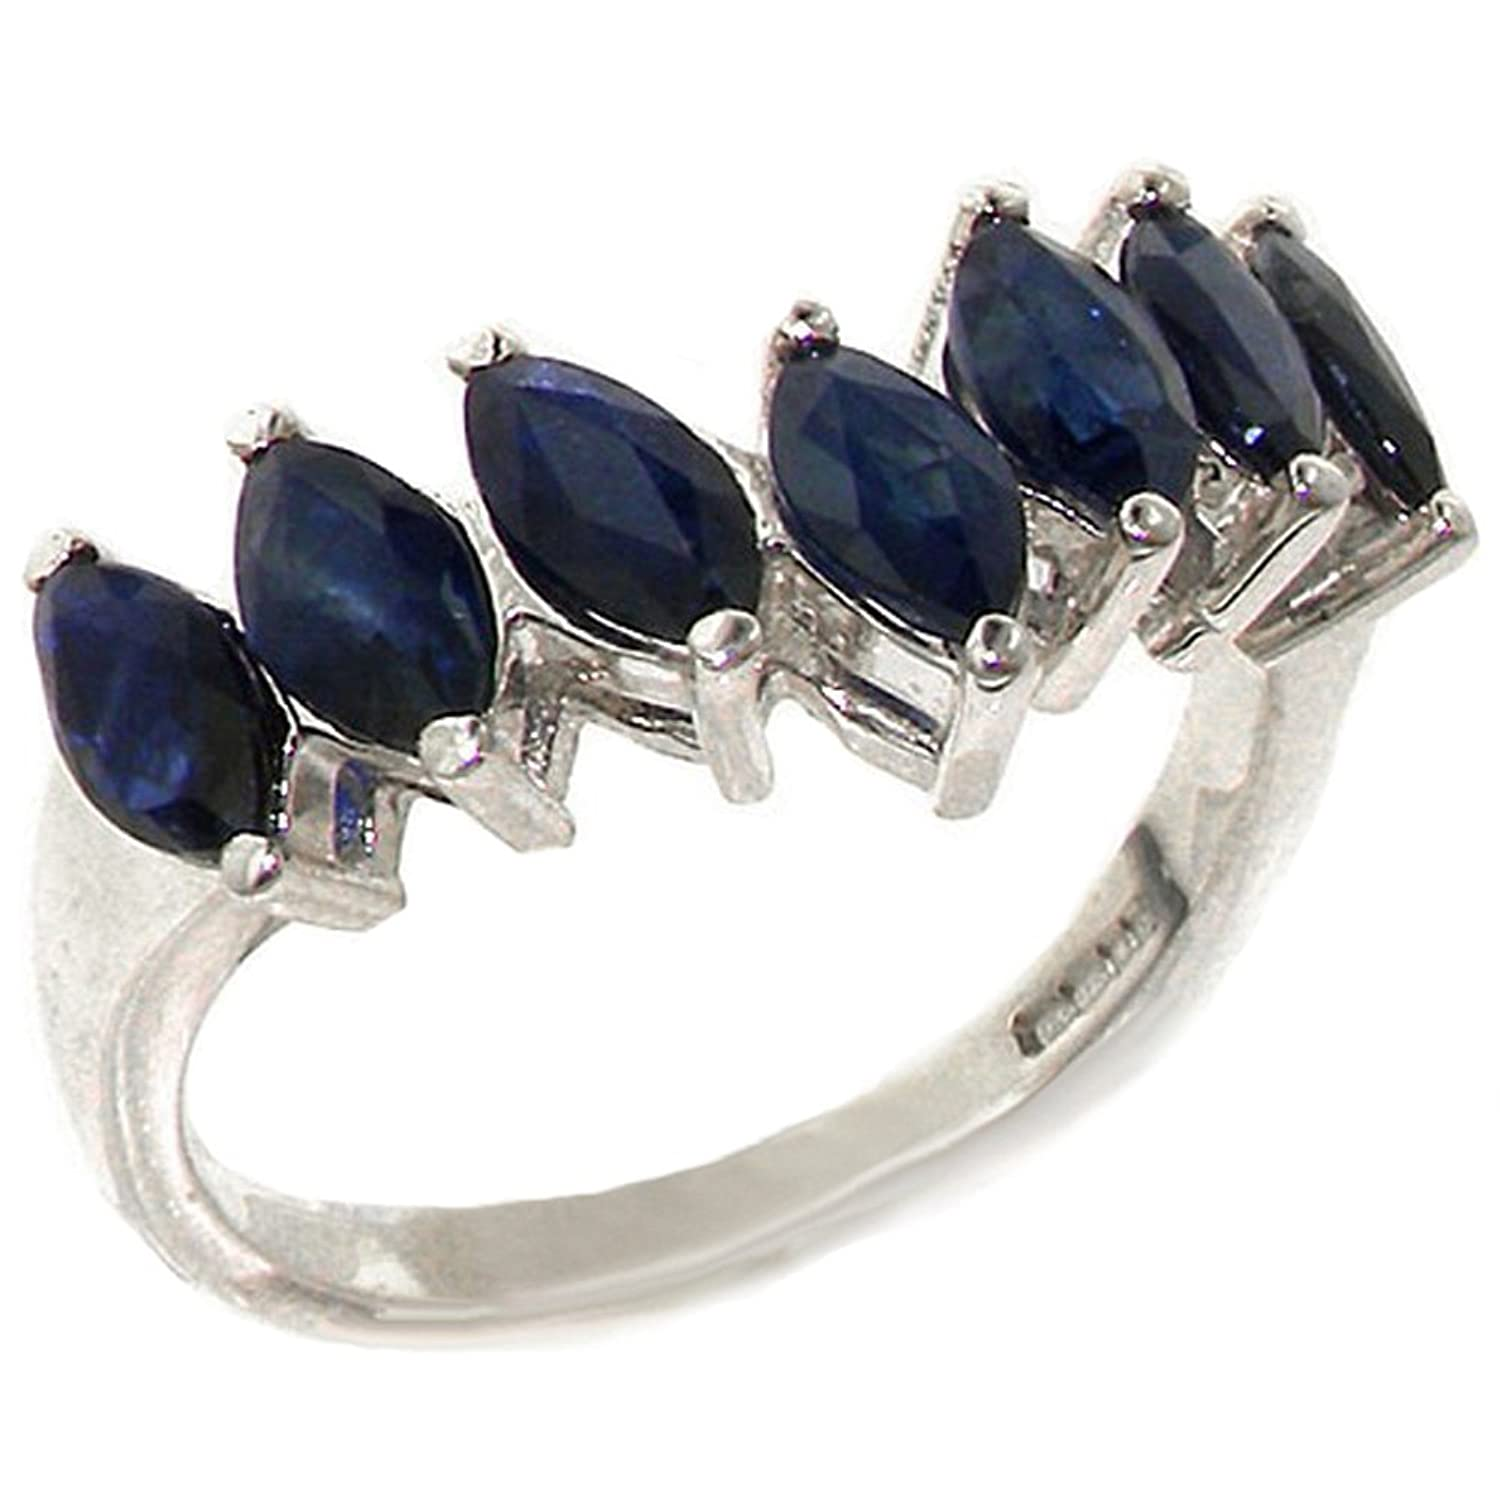 925 Sterling Silver Natural Sapphire Womens Wishbone Eternity Ring - Sizes 4 to 12 Available